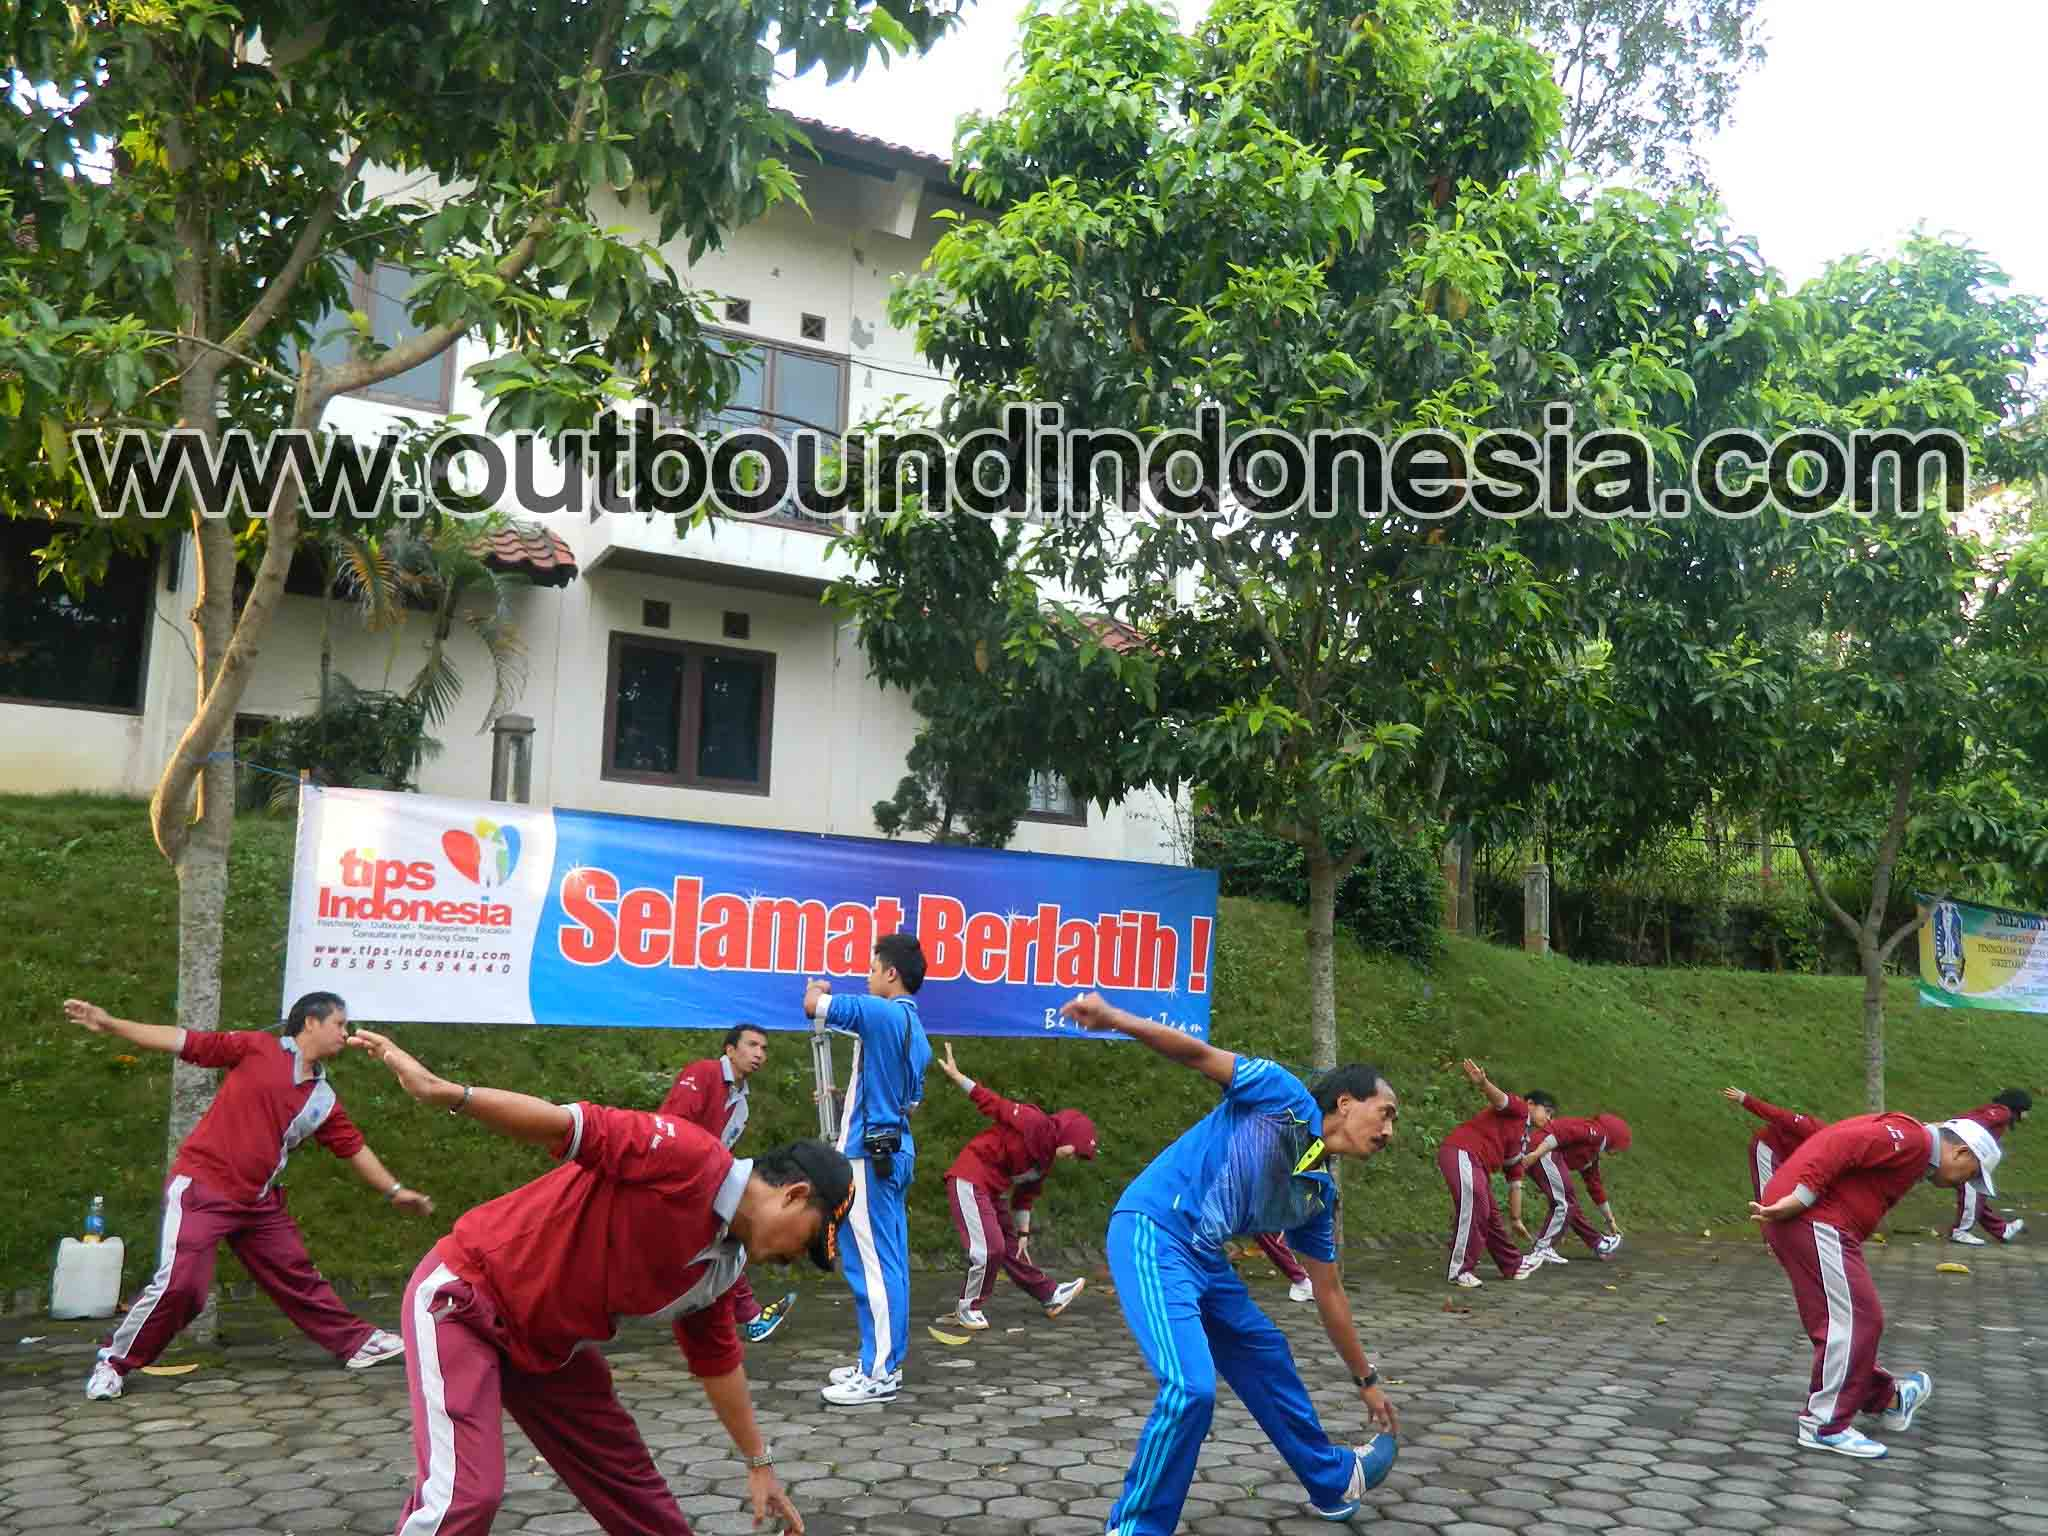 DPRD Jatim Di Blessing Hills Trawas, http://www.outboundindonesia.com, 081 287 000 995